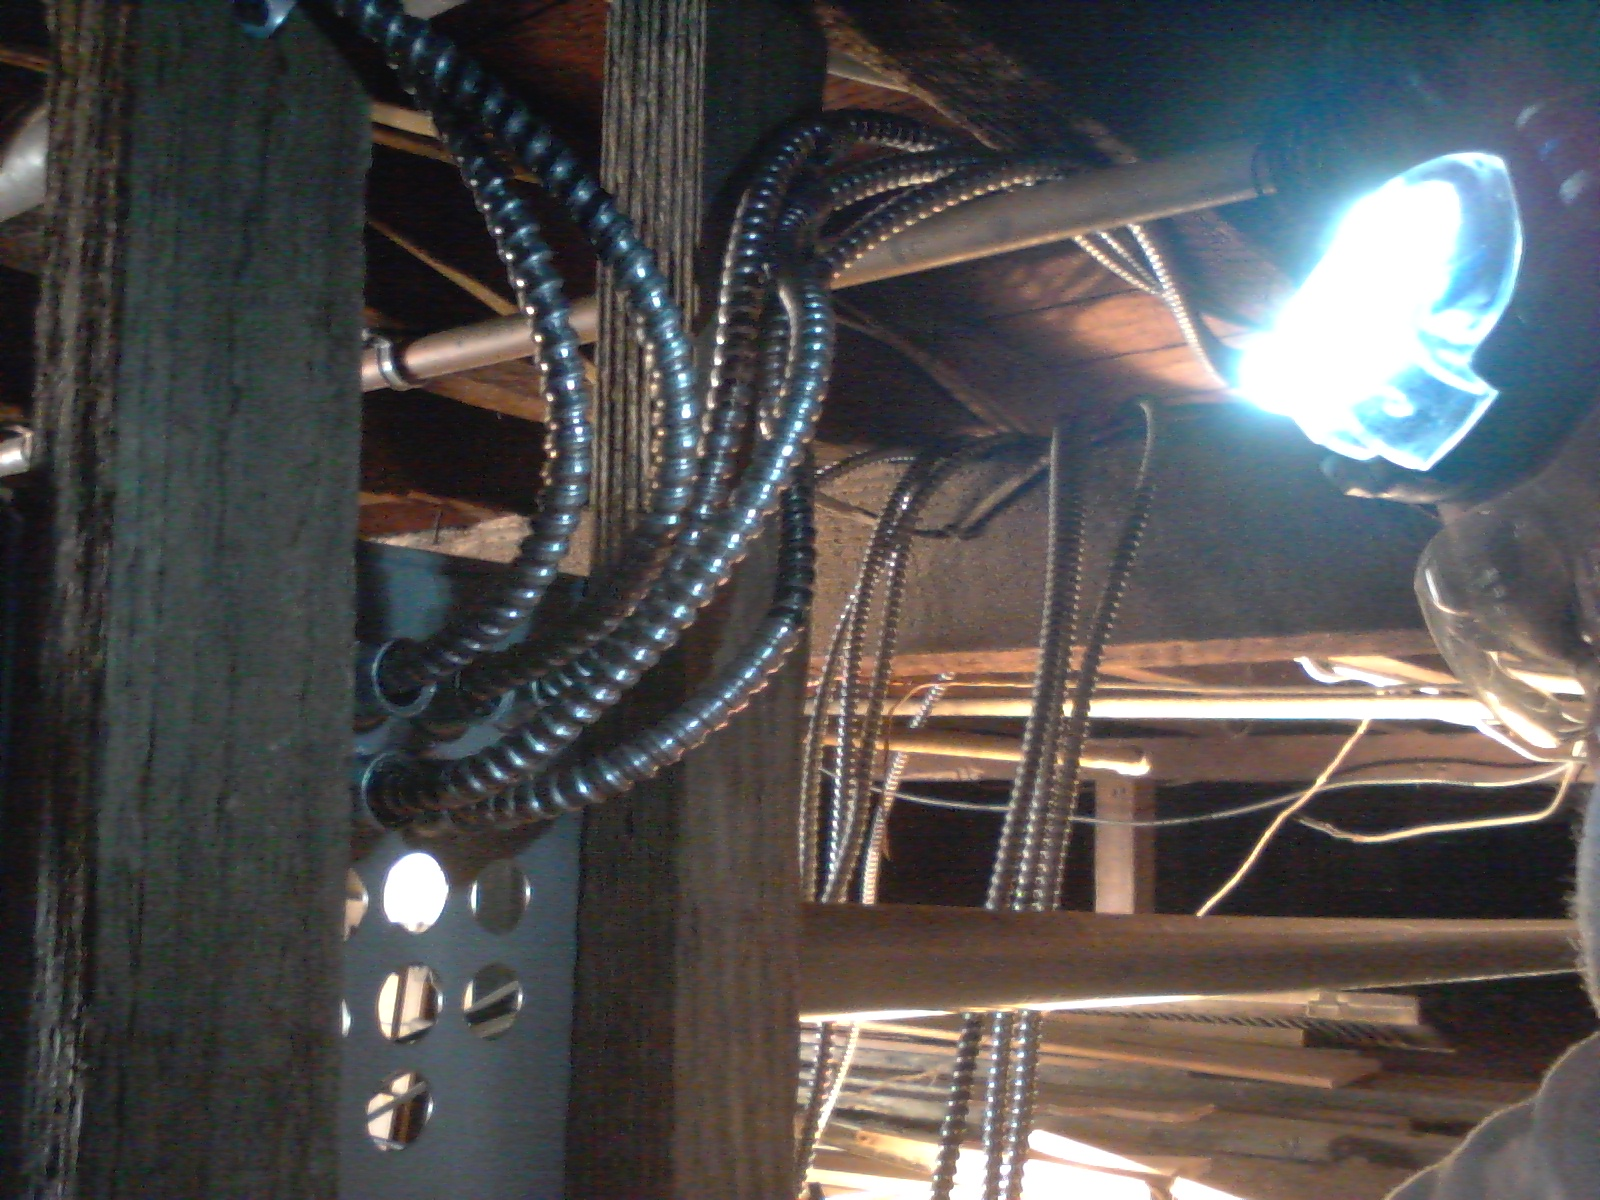 Rewiring Job for John D. in Oakland, CA – Wires Chewed Up By Rats